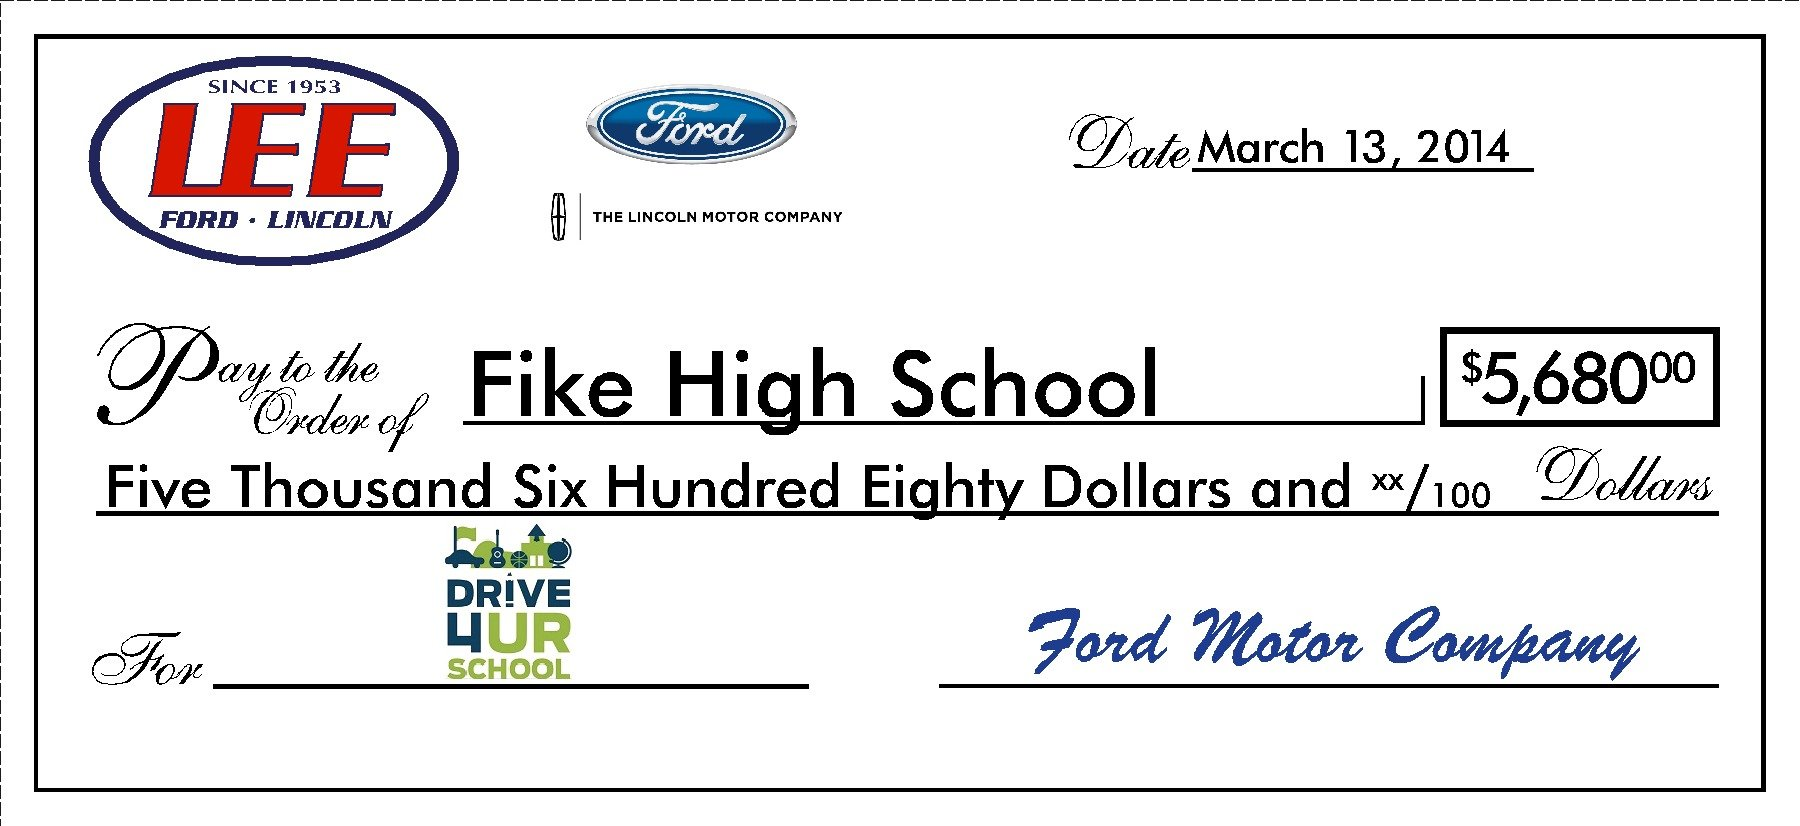 Lee Big Check Fike 3.13.14.jpg